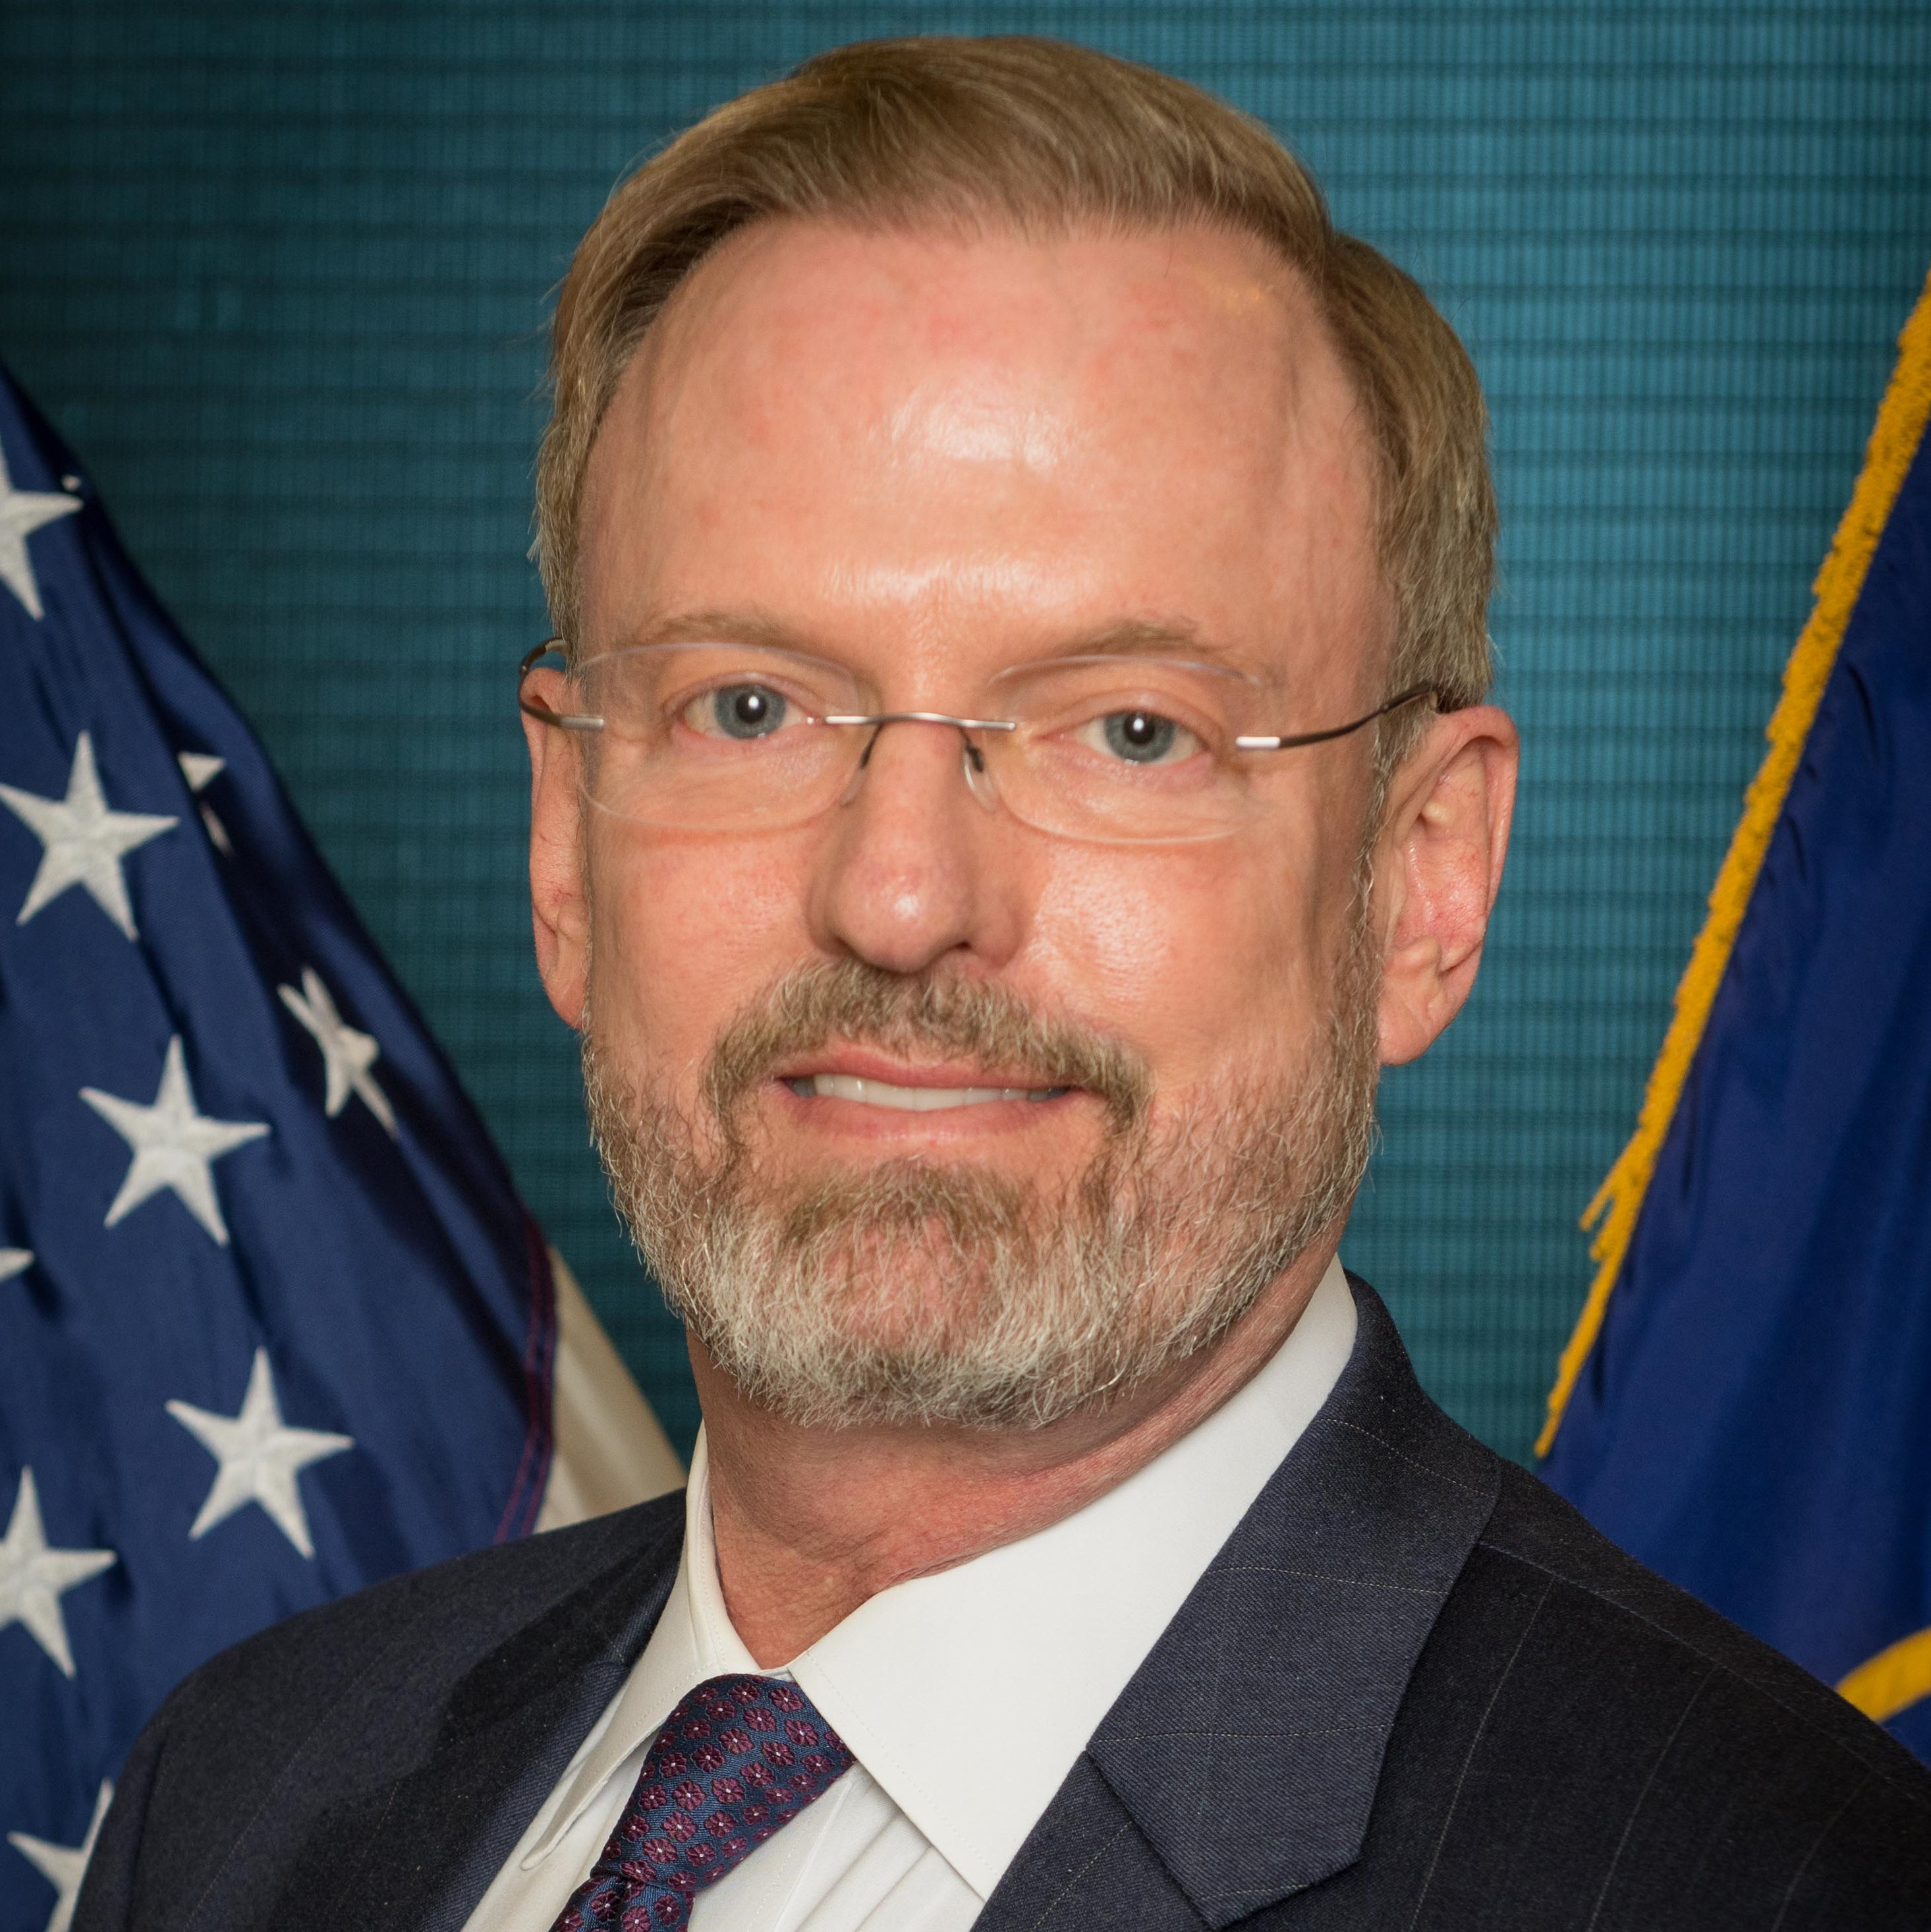 Image of Patrick Bevill, Chief Information Security Officer, Federal Retirement Thrift Investment Board